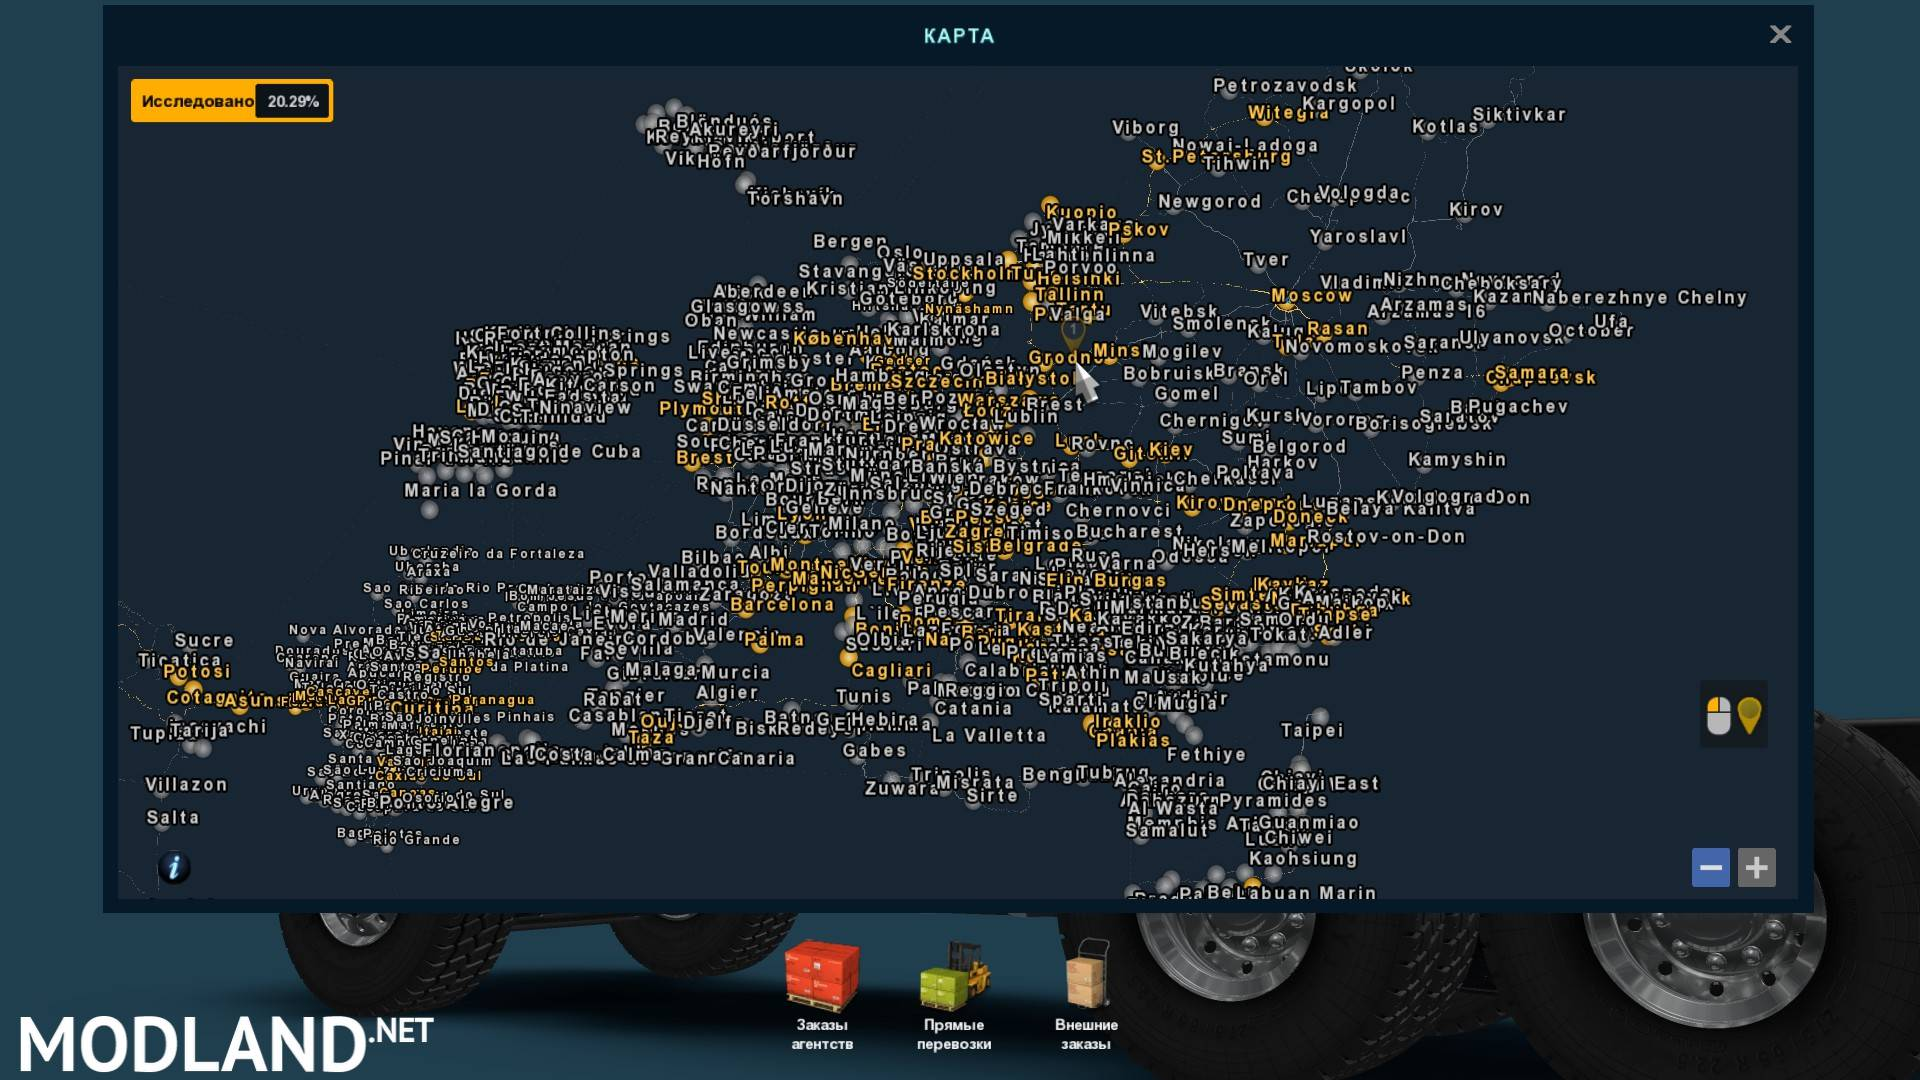 Mario Map 12.2 compatible with DLC France (1.26) mod for ETS 2